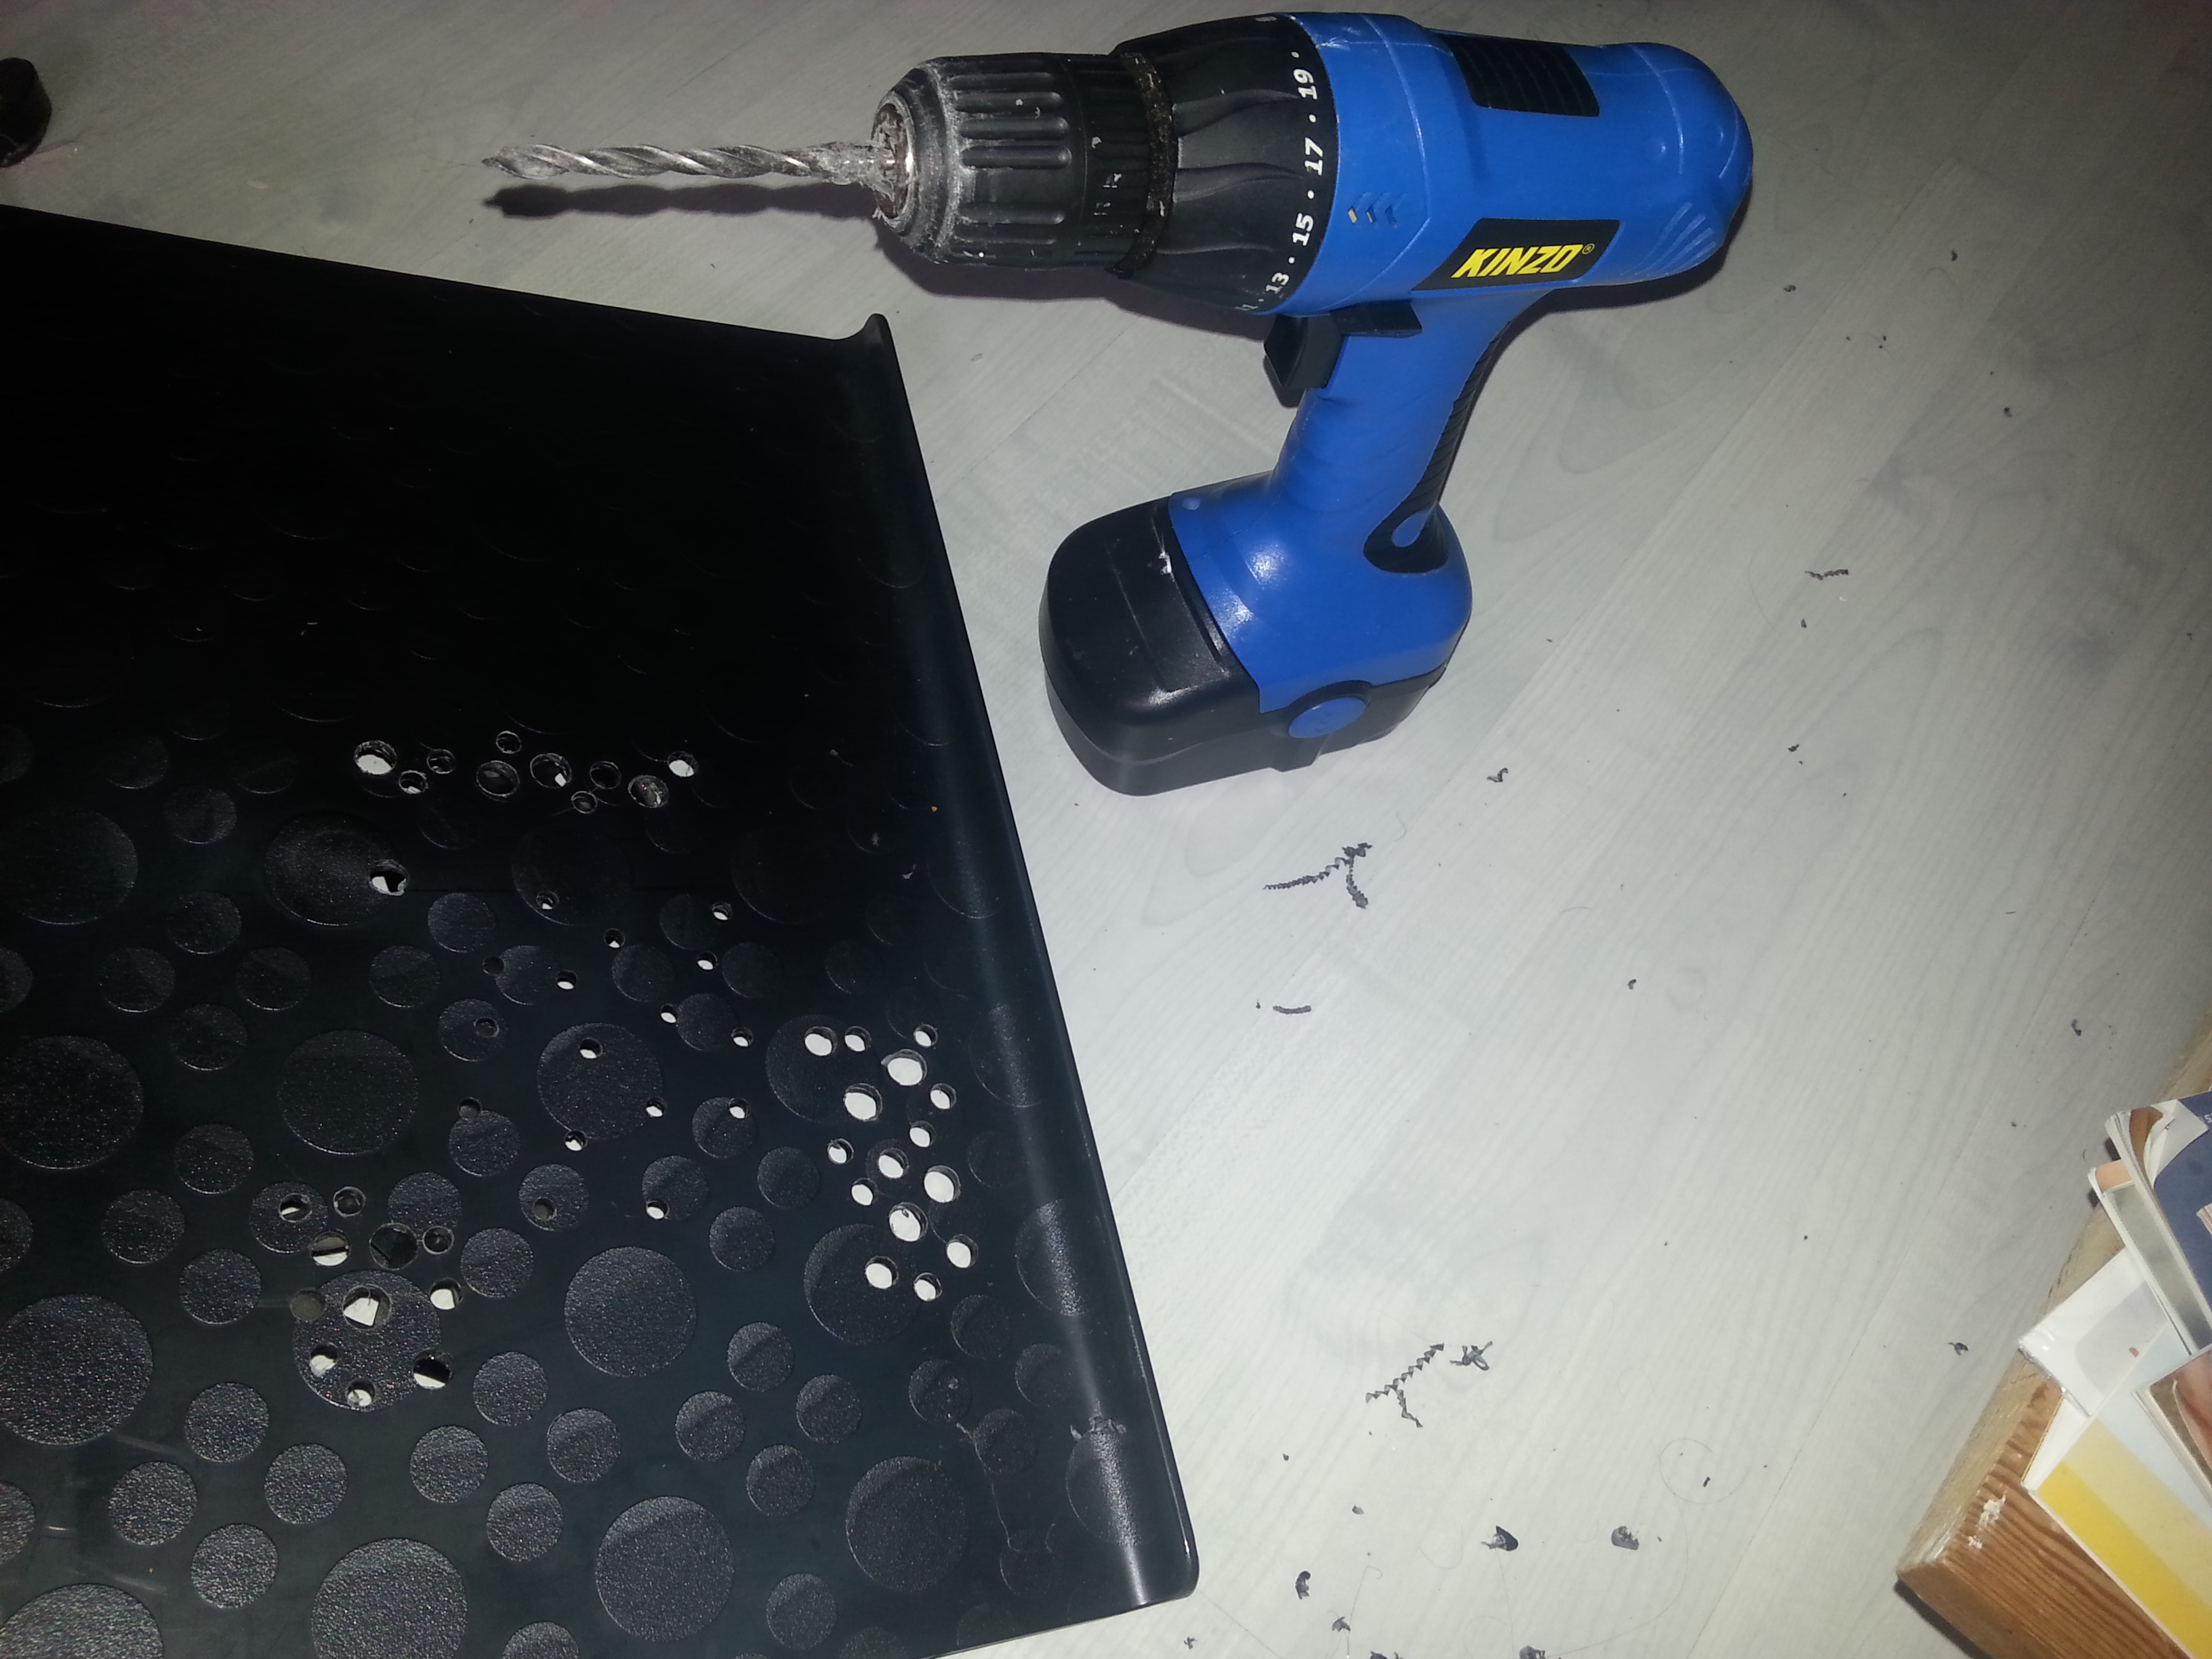 Picture of Drill Some Holes.